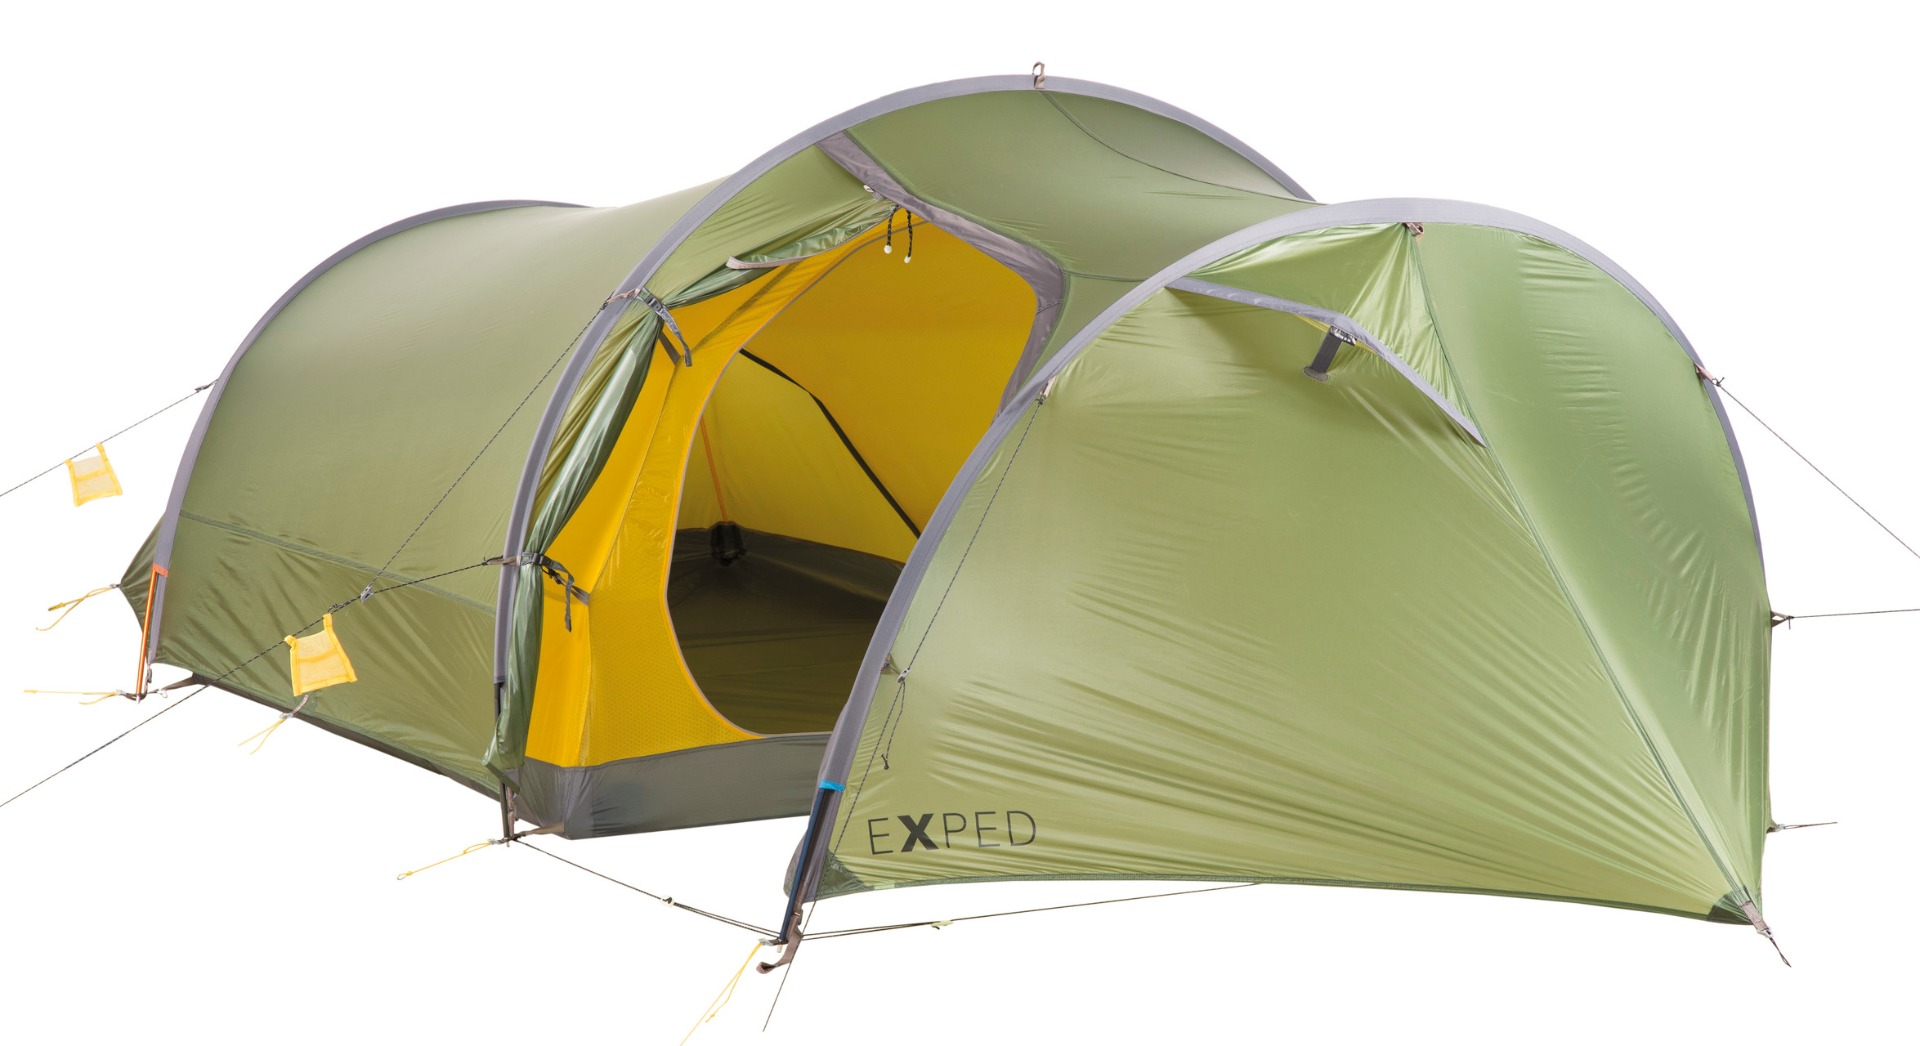 EXPED EXPED Cetus III UL green -